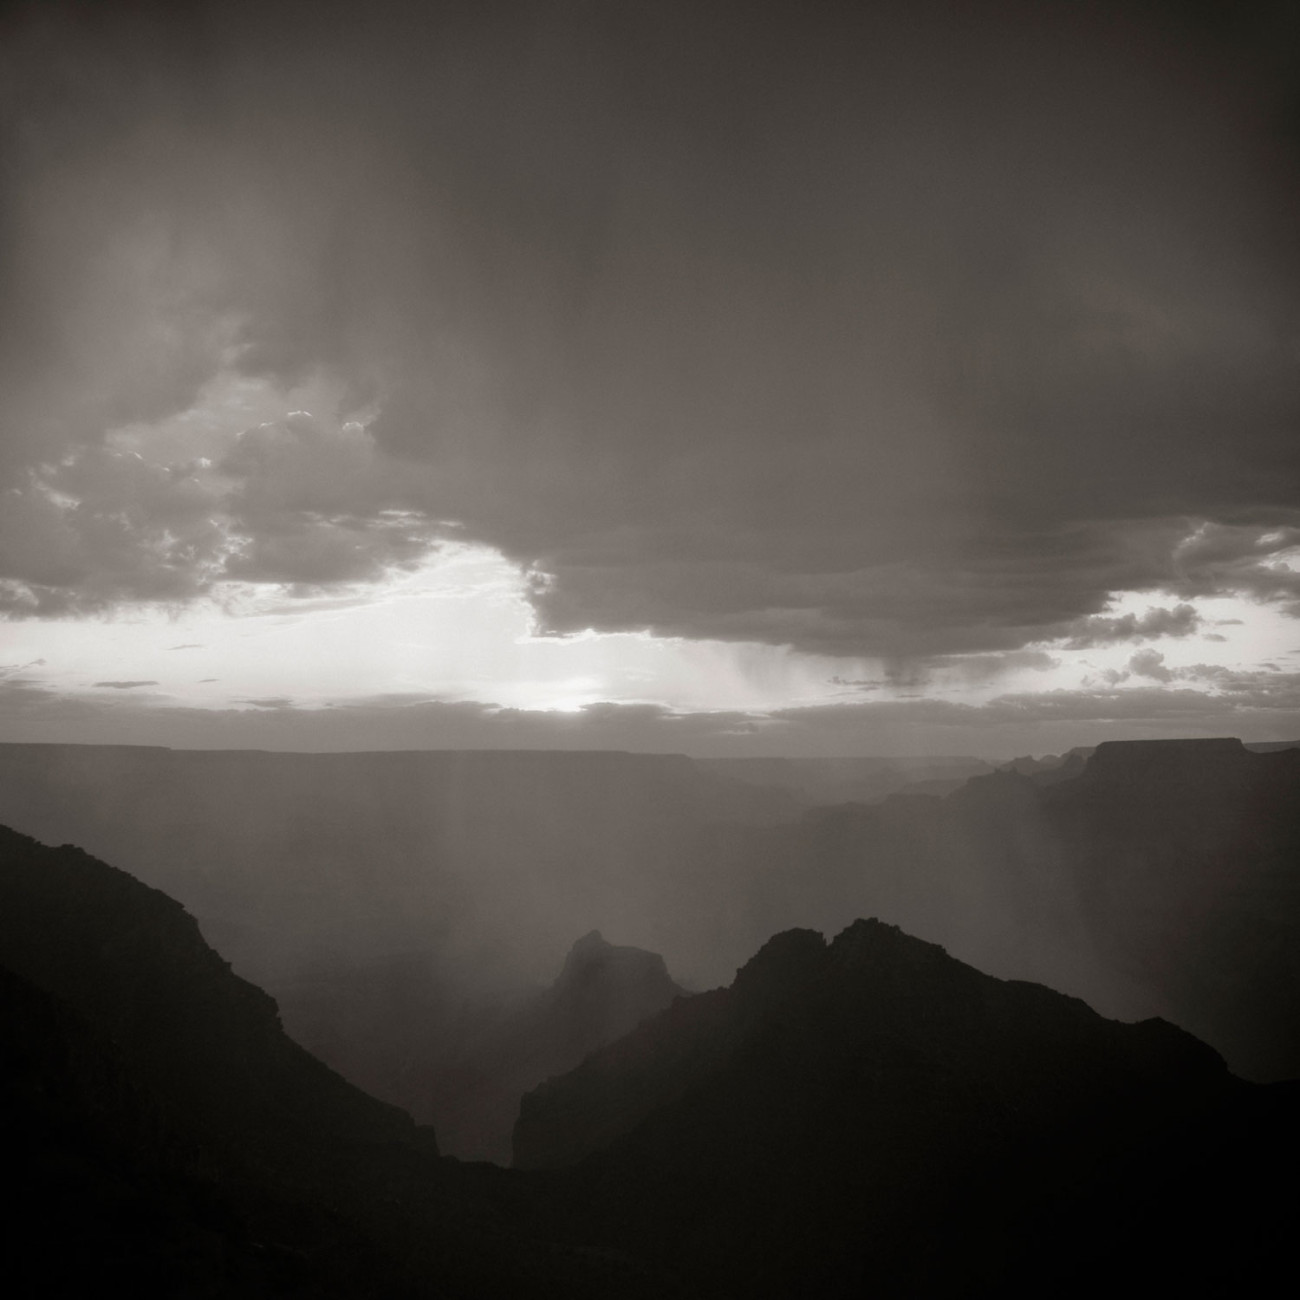 Clearing storm, Grand Canyon, Arizona, 2008